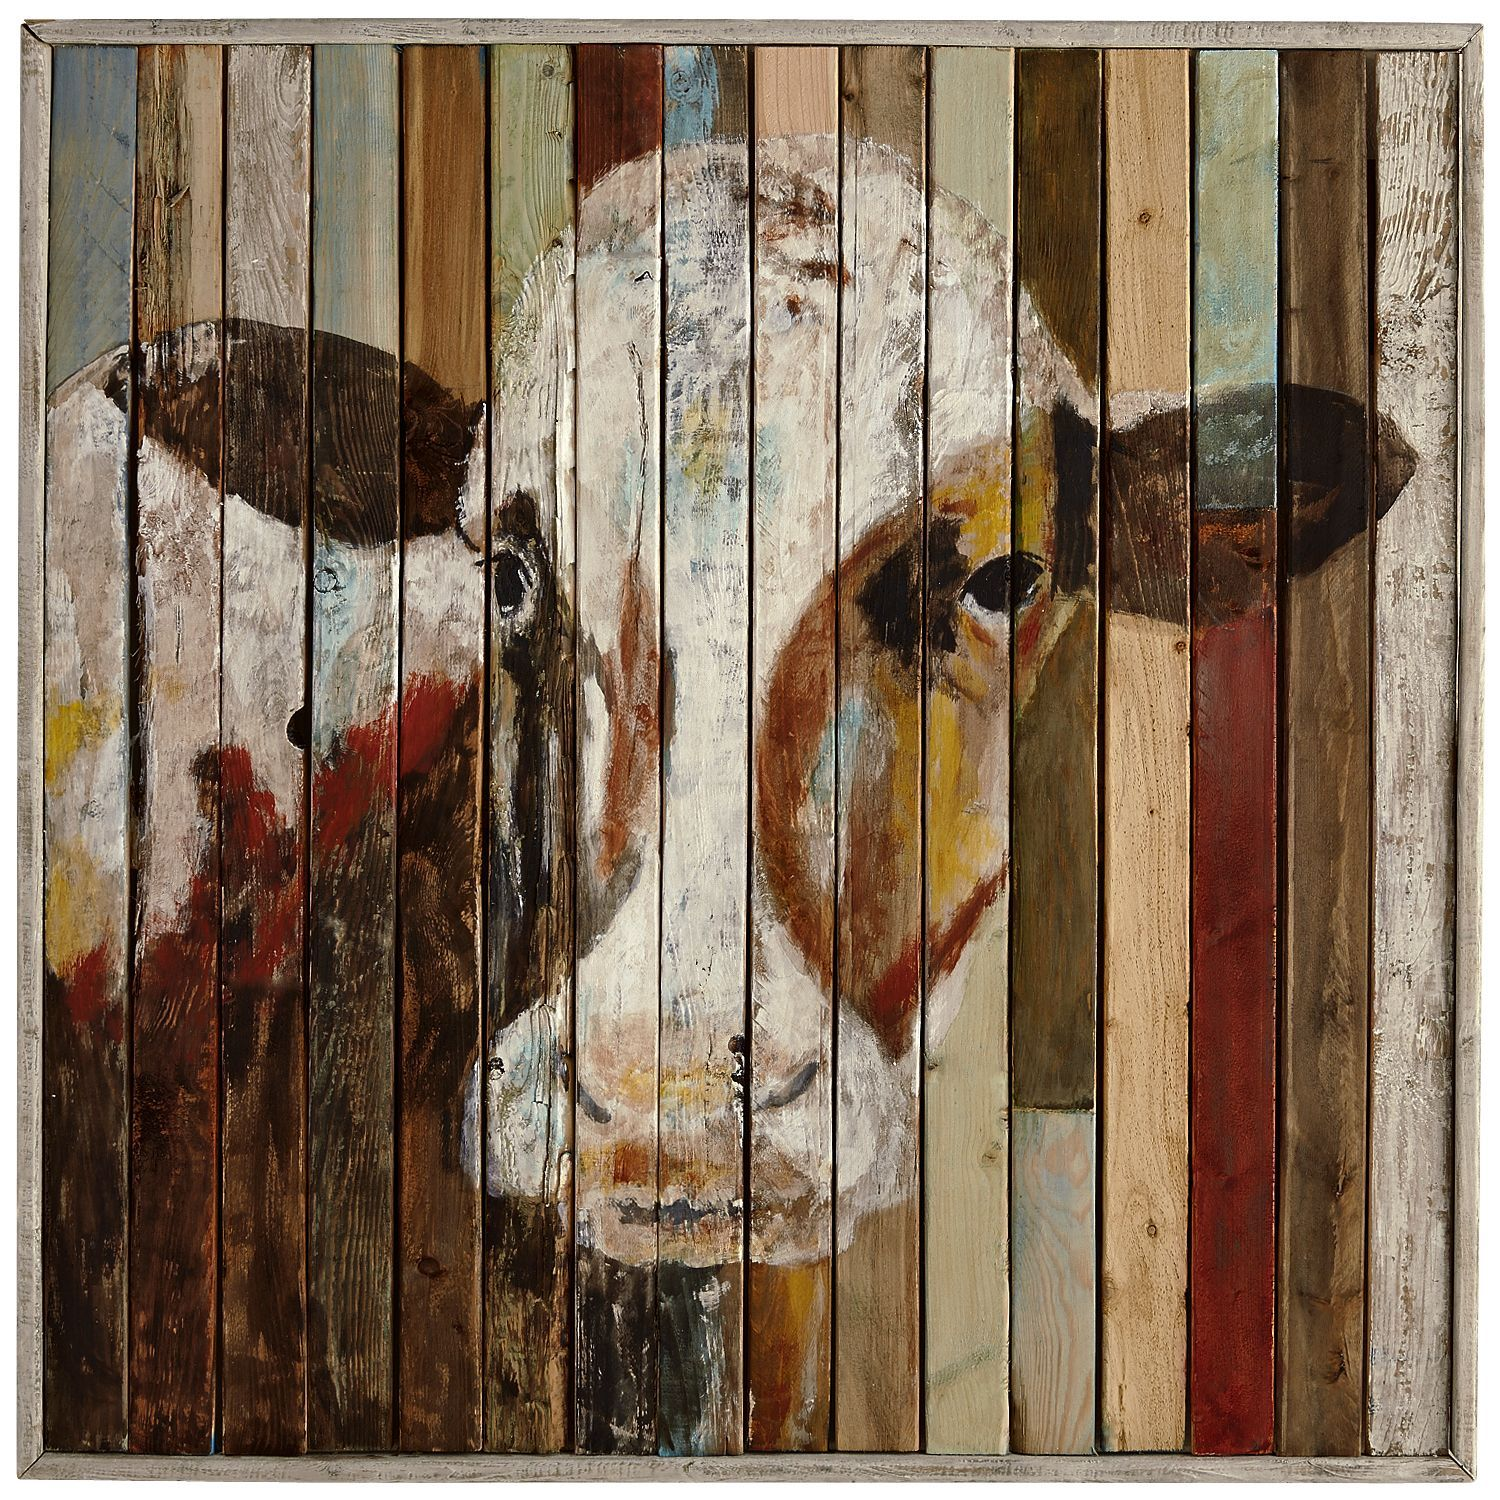 Belle of the Farm Cow Wall Art | Cow wall art, Walls and Farm house